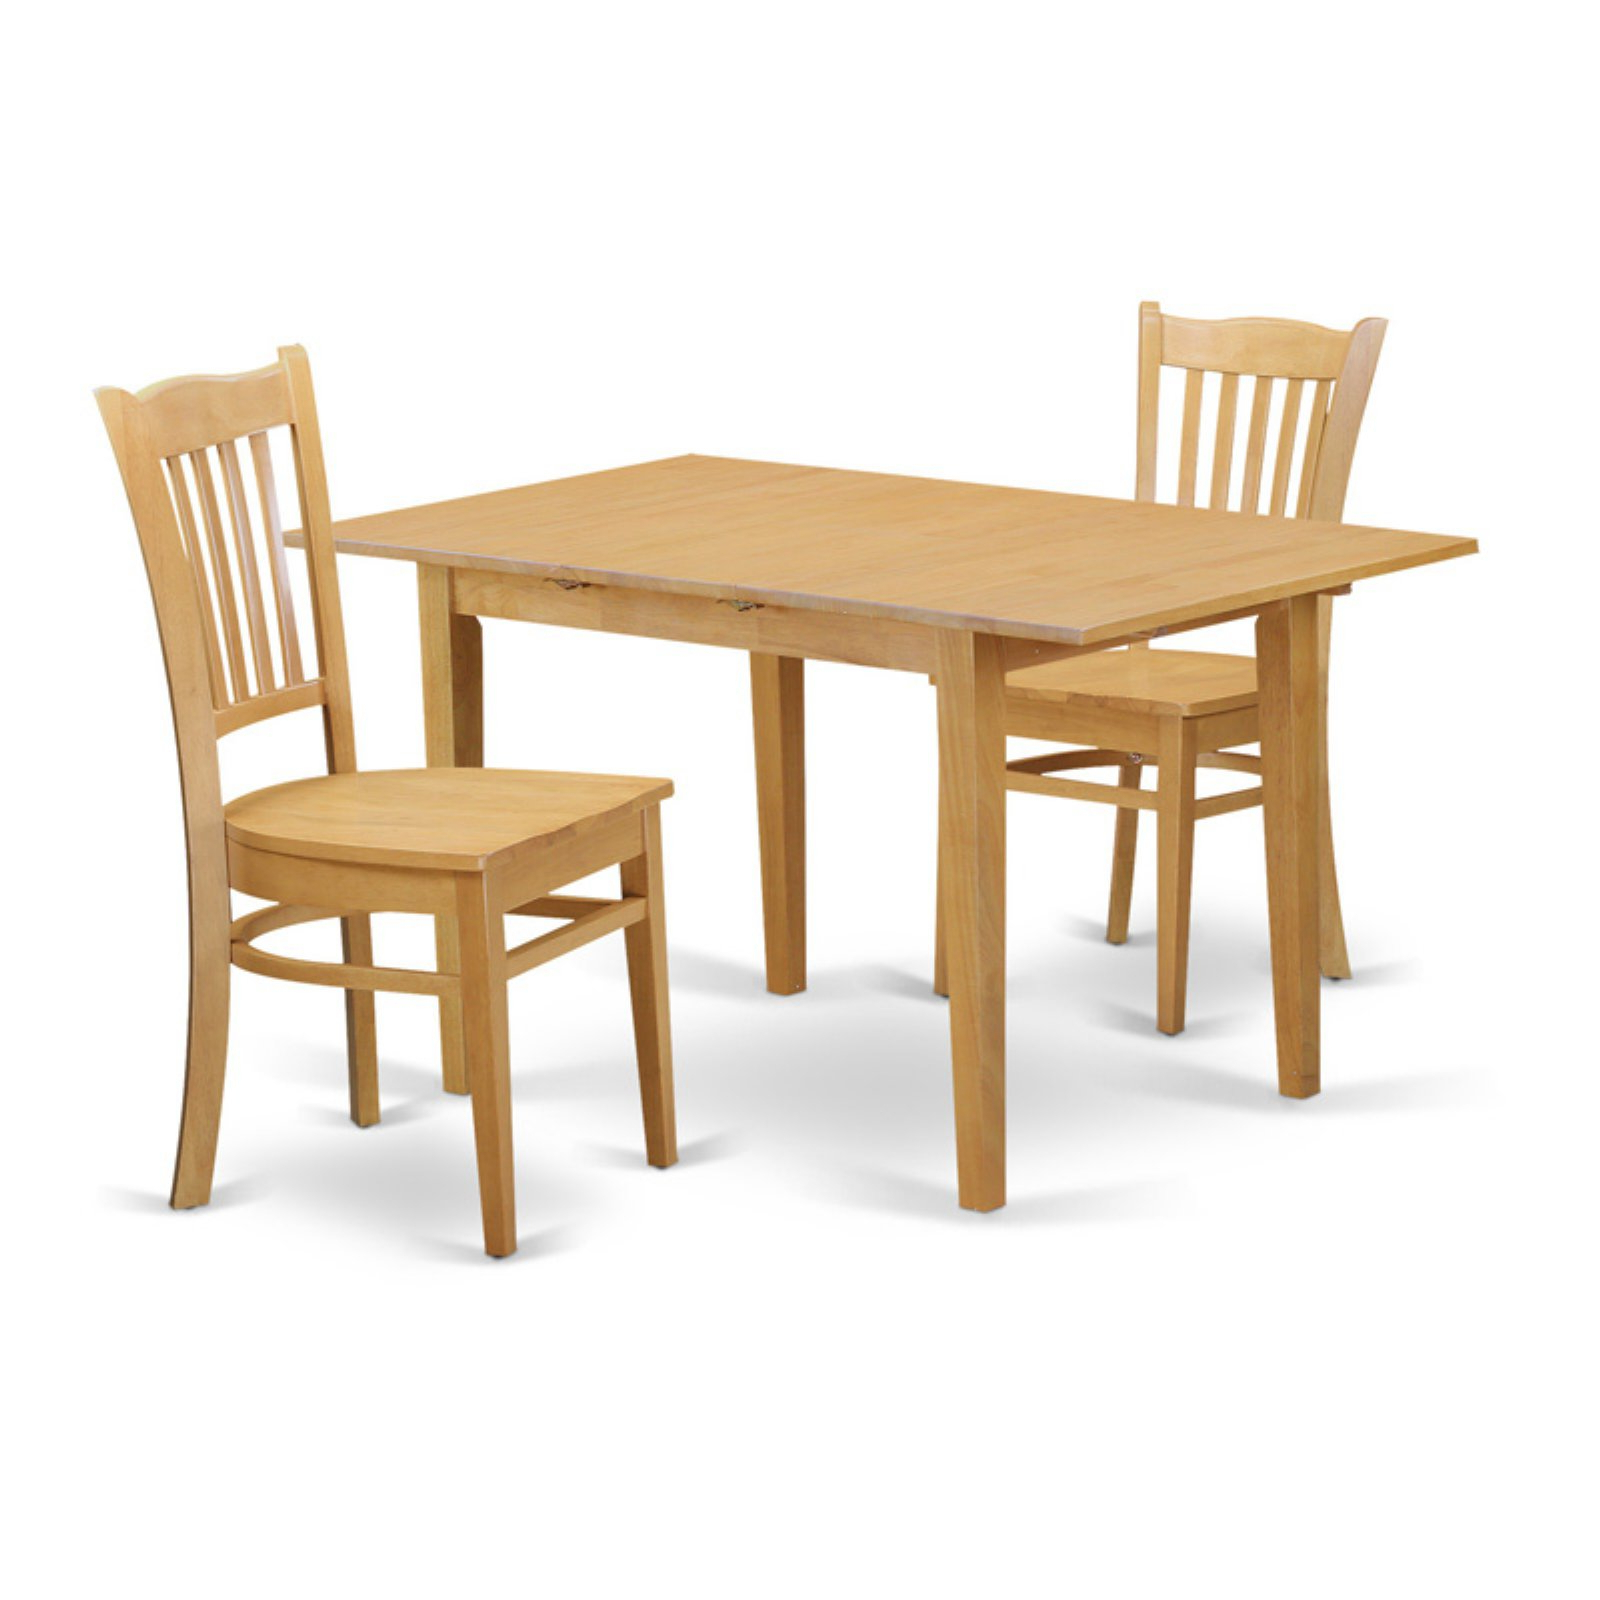 Most Popular Smyrna 3 Piece Dining Sets Intended For East West Furniture Norfolk 3 Piece Comb Back Dining Table Set In (View 7 of 20)